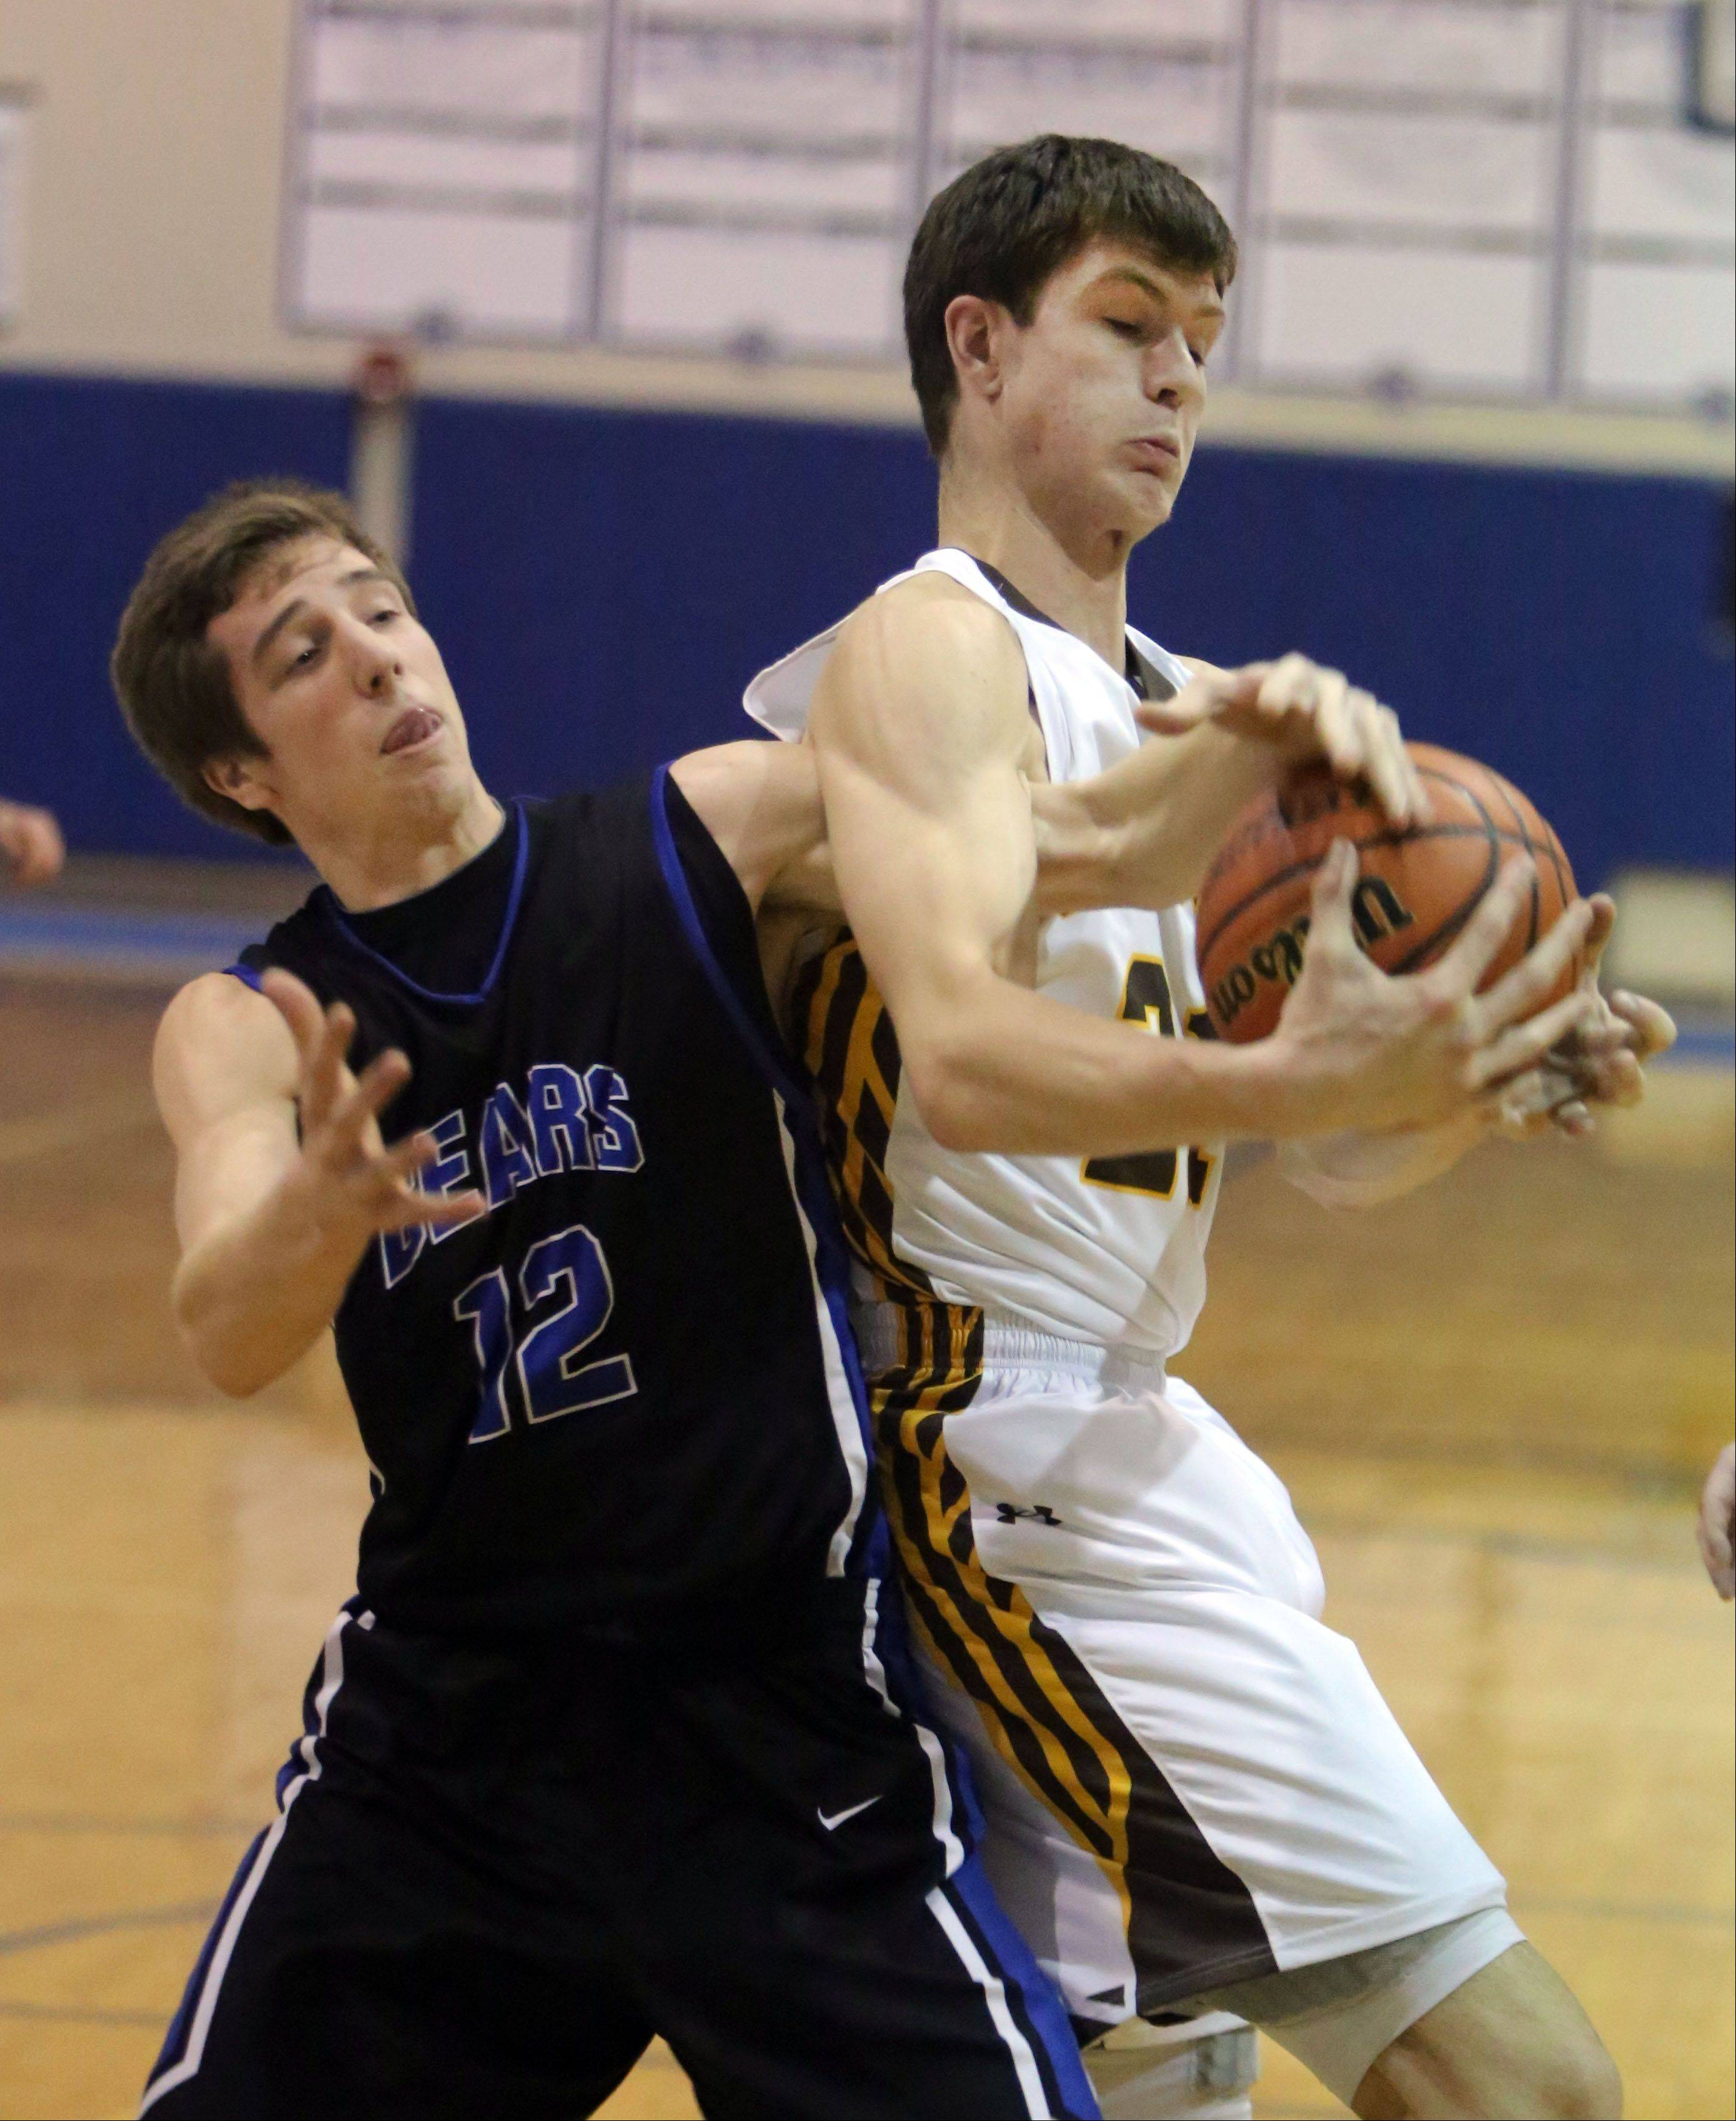 Lake Zurich's Corey Helgeson, left, and Carmel's Jack George battle for a rebound Monday at Lake Zurich.